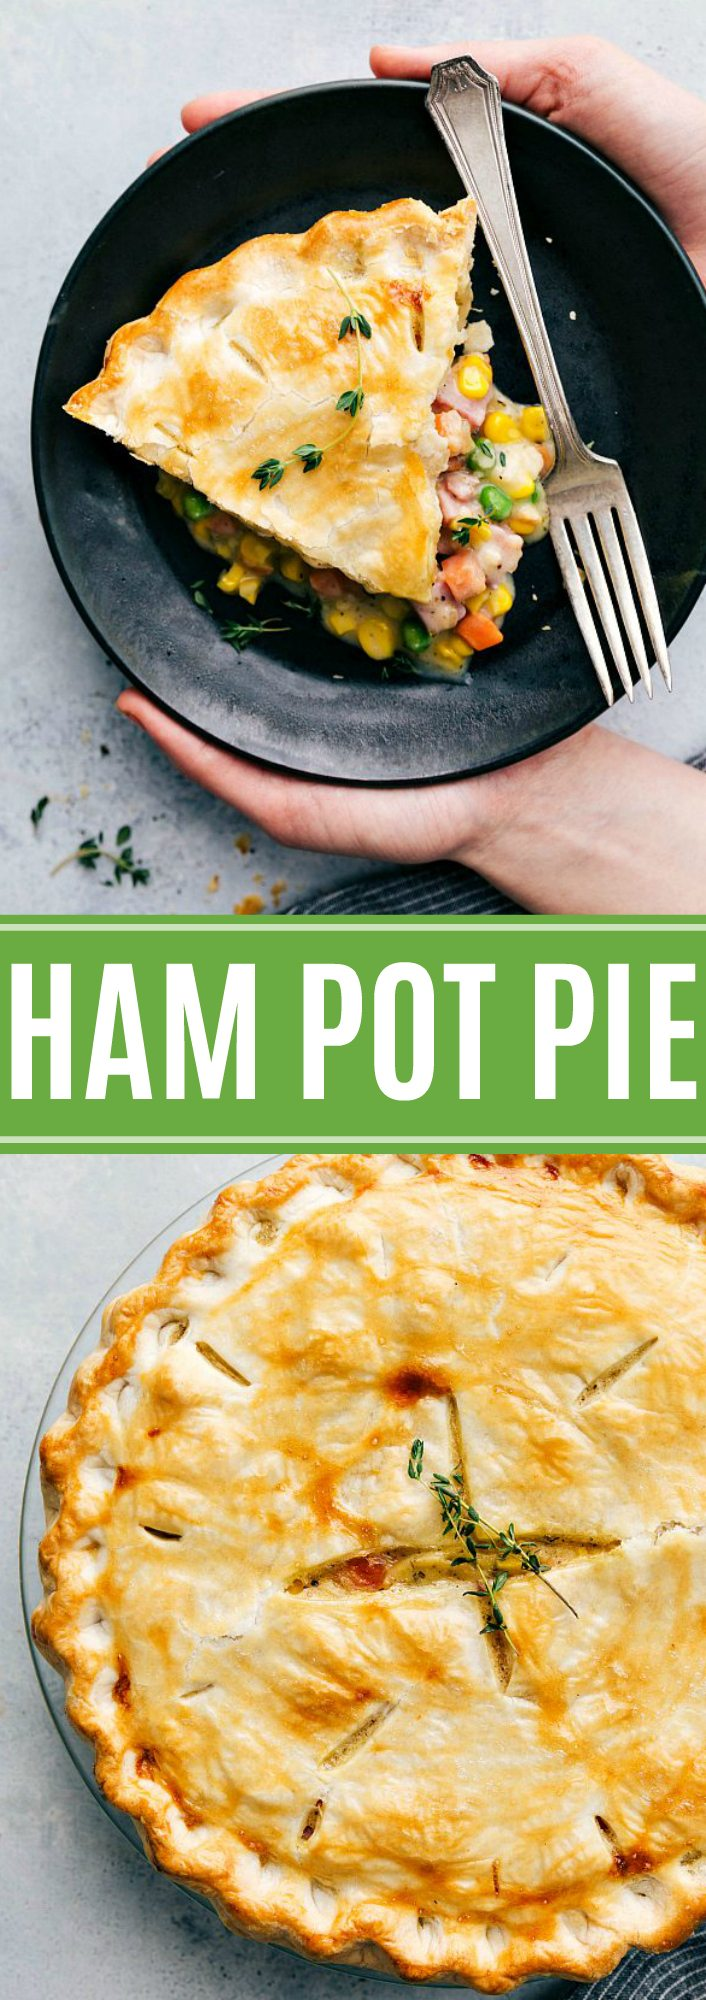 The best ever delicious ham pot pie via chelseasmessyapron.com #ham #pot #pie #veggies #easy #quick #dinner #kidfriendly #potato #vegetables